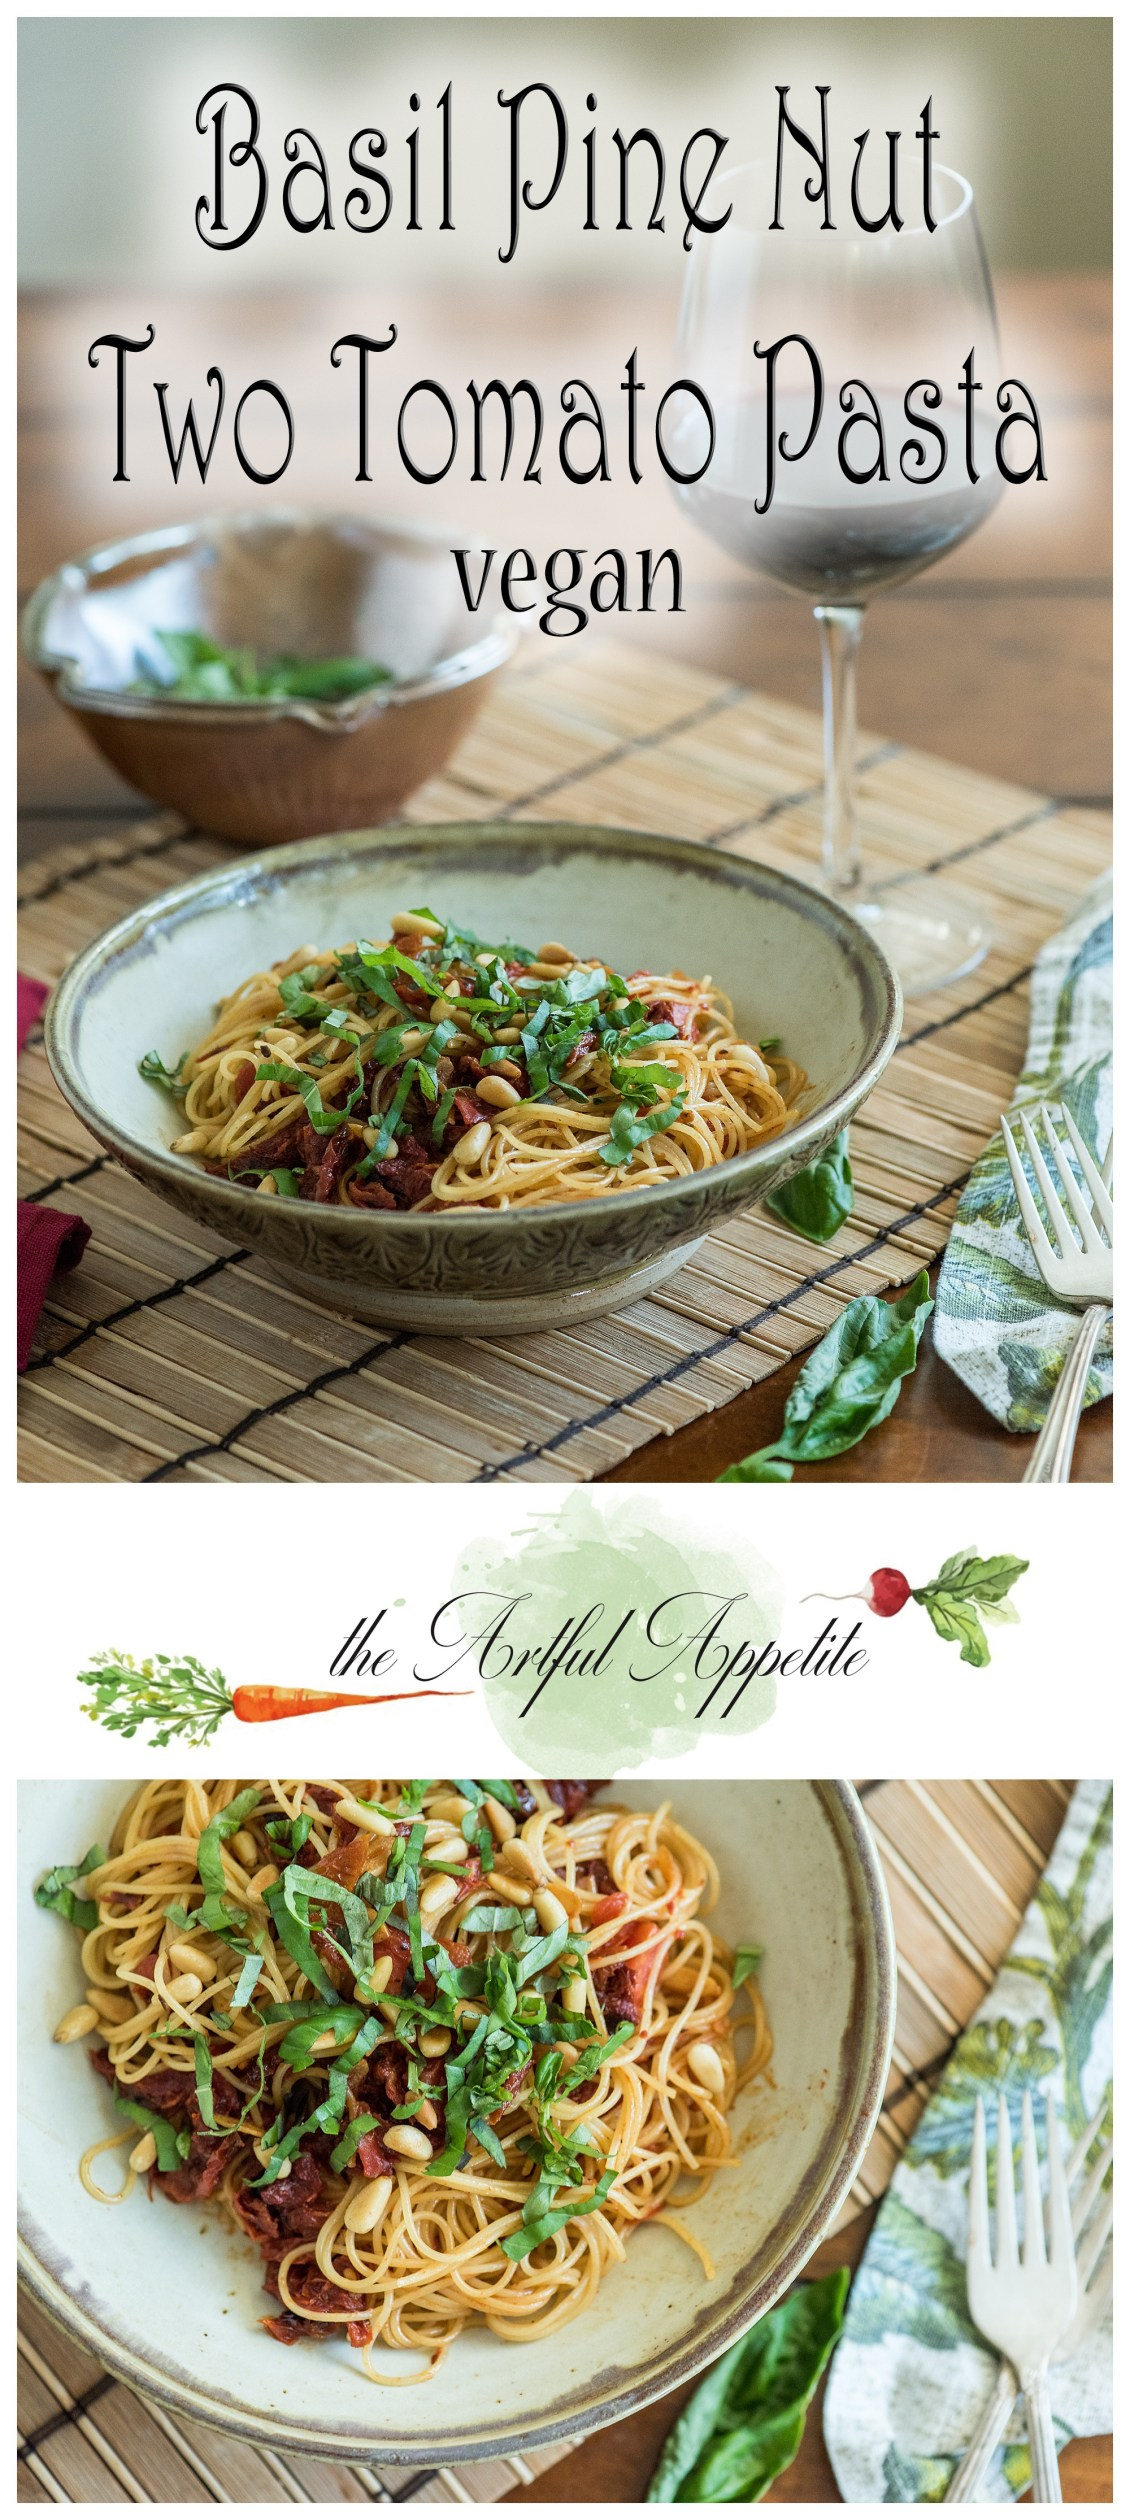 This simple pasta is great to have on hand anytime of the year! Basil Pine Nut Two Tomato Pasta Vegan The Artful Appetite